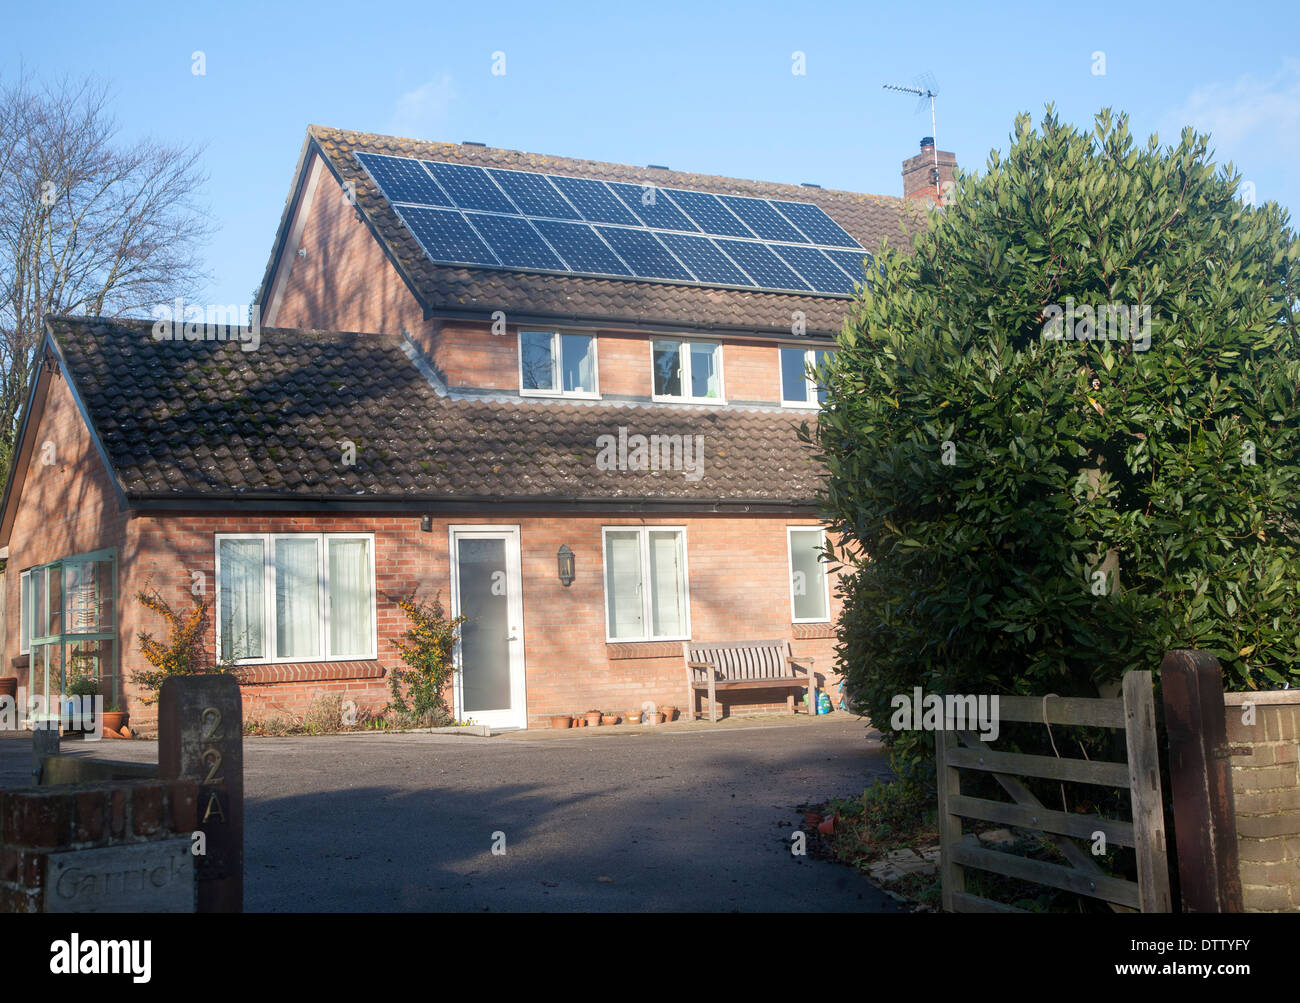 Solar panels on roof of residential property in Woodbridge, Suffolk, England - Stock Image